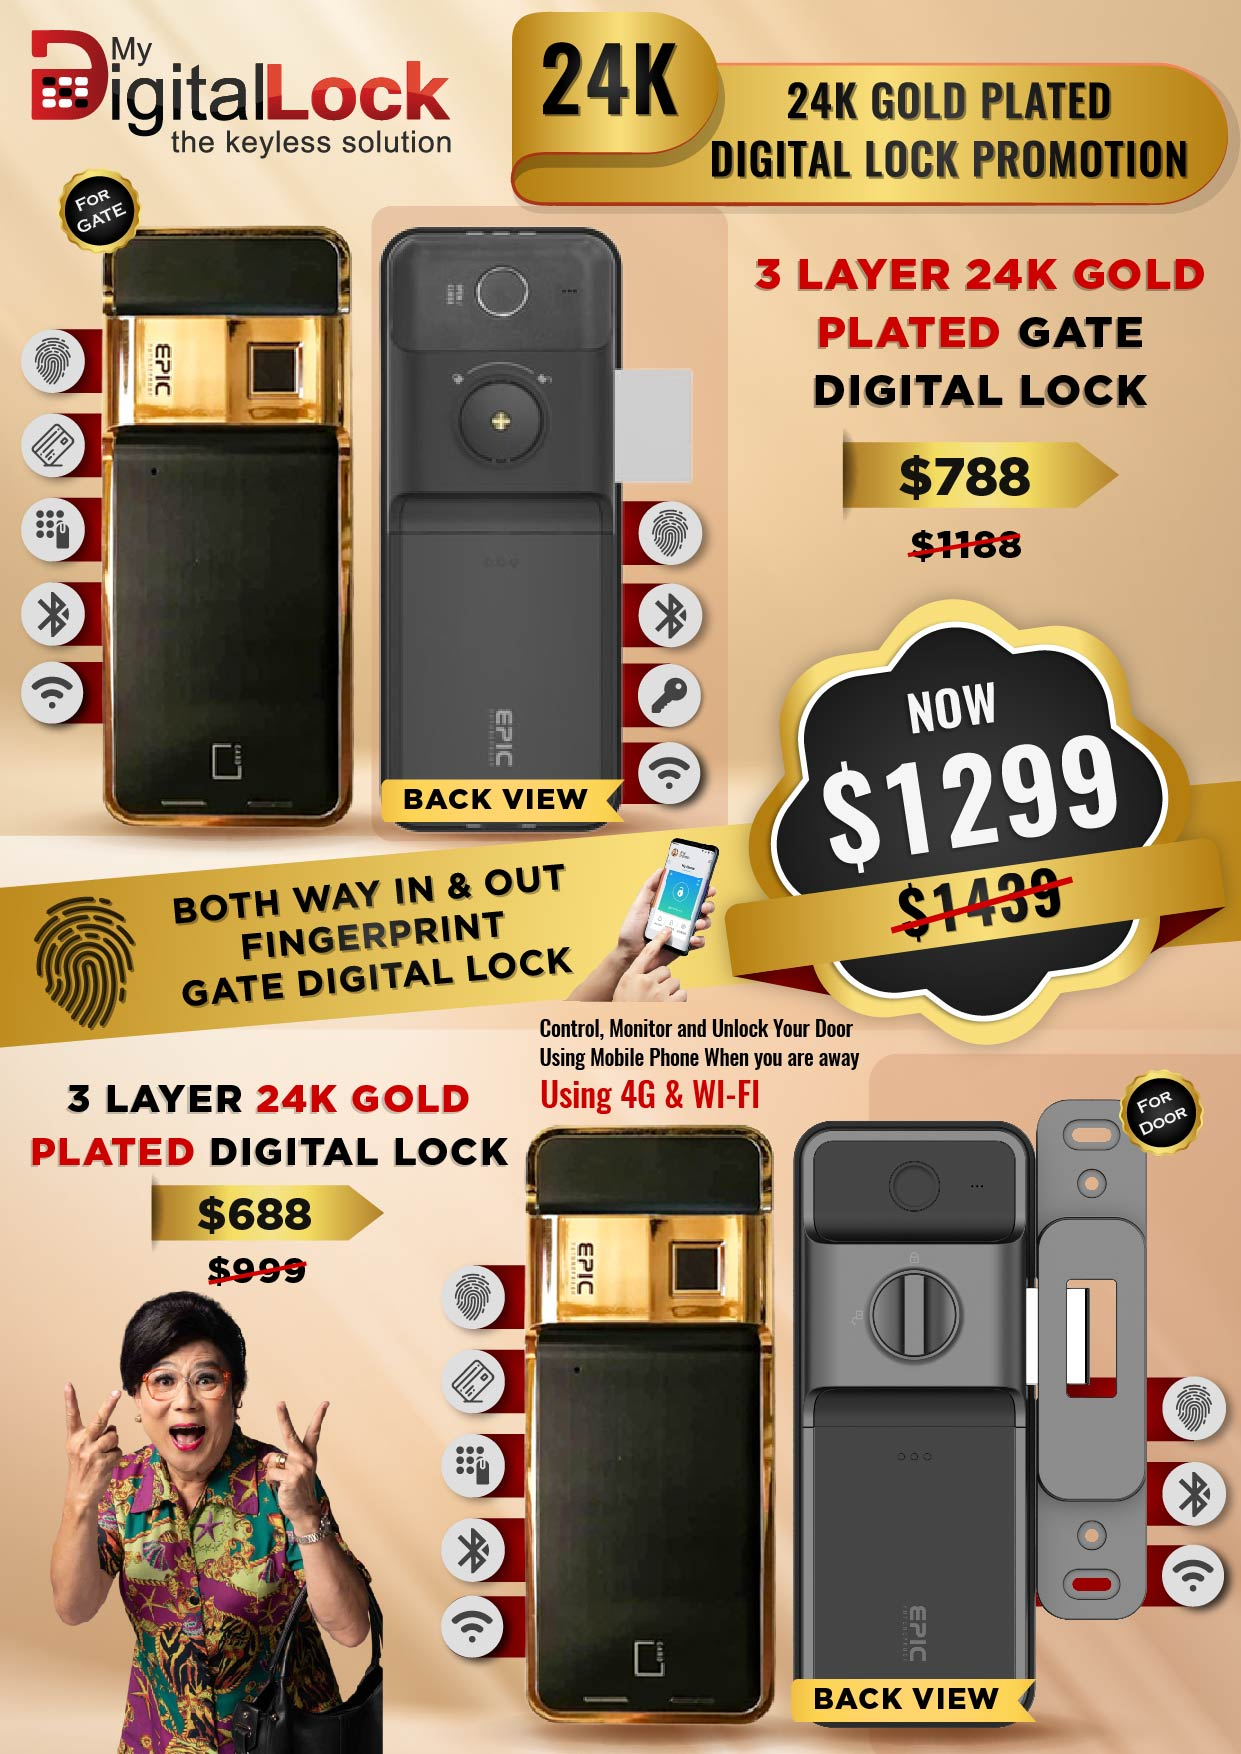 24K-Gold-Plated-Gate-and-Door-Digital-Lock-Promotions